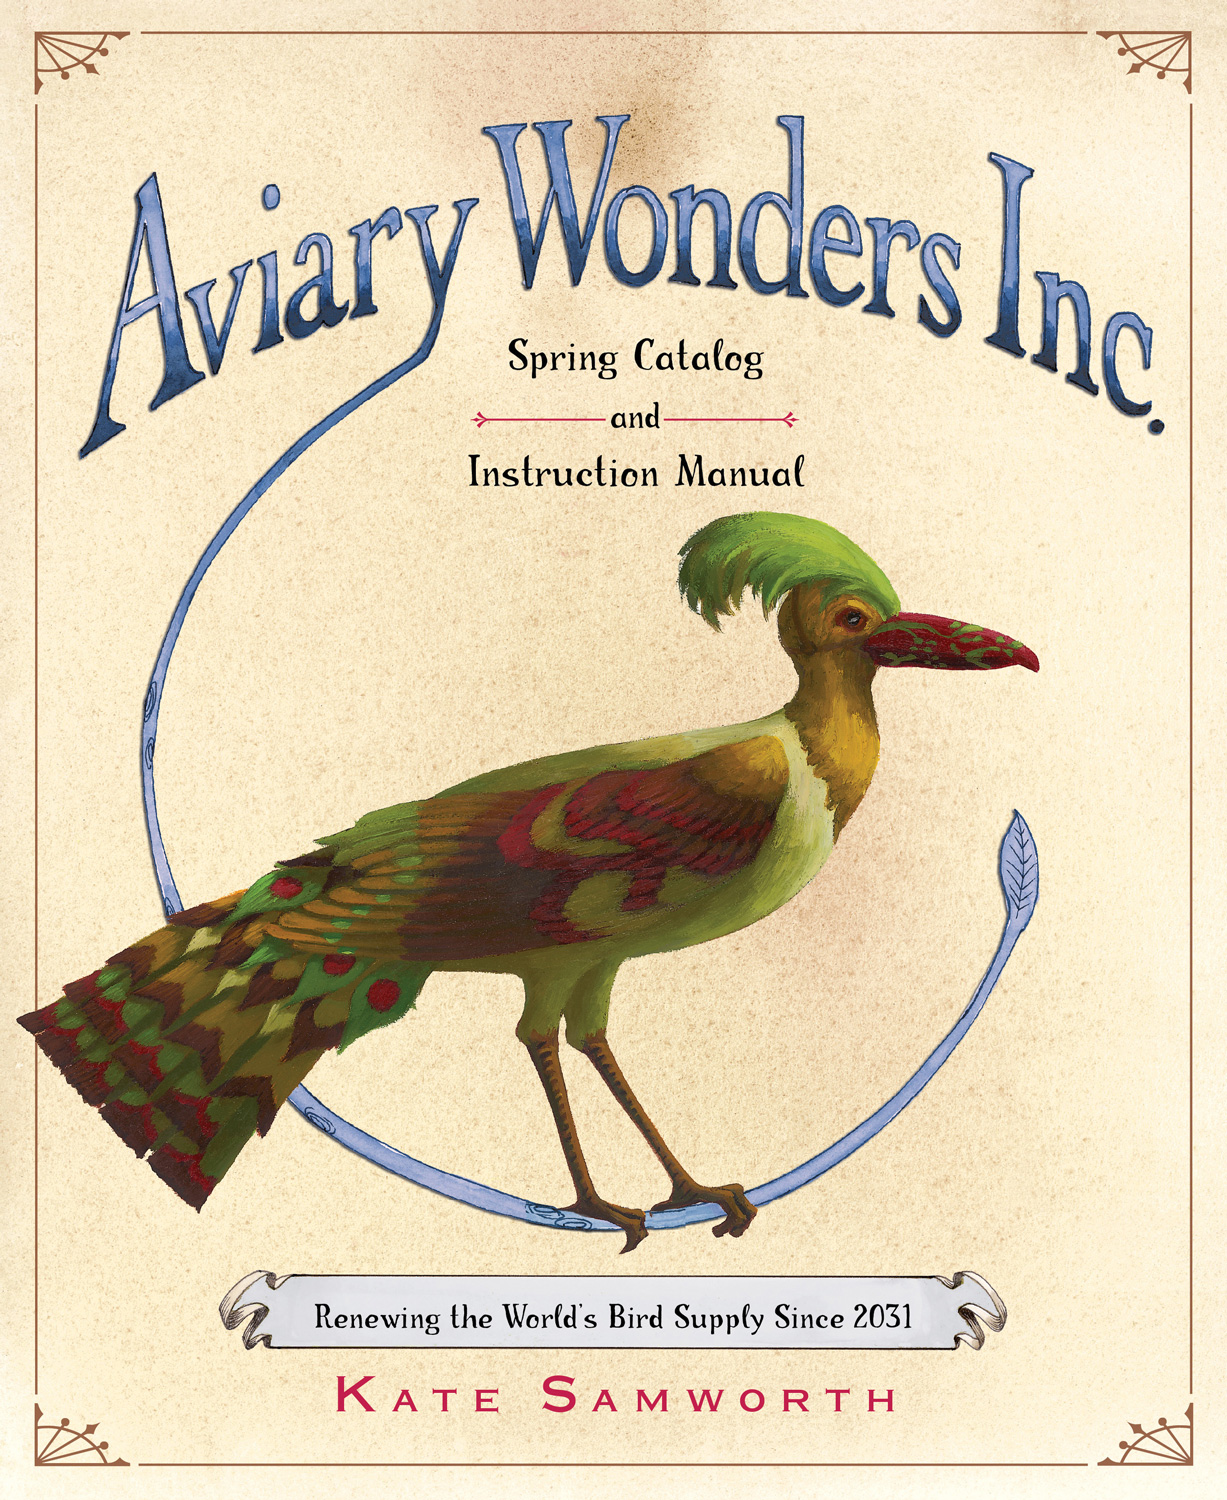 Aviary Wonders Inc. Spring Catalog and Instruction Manual-9780547978994